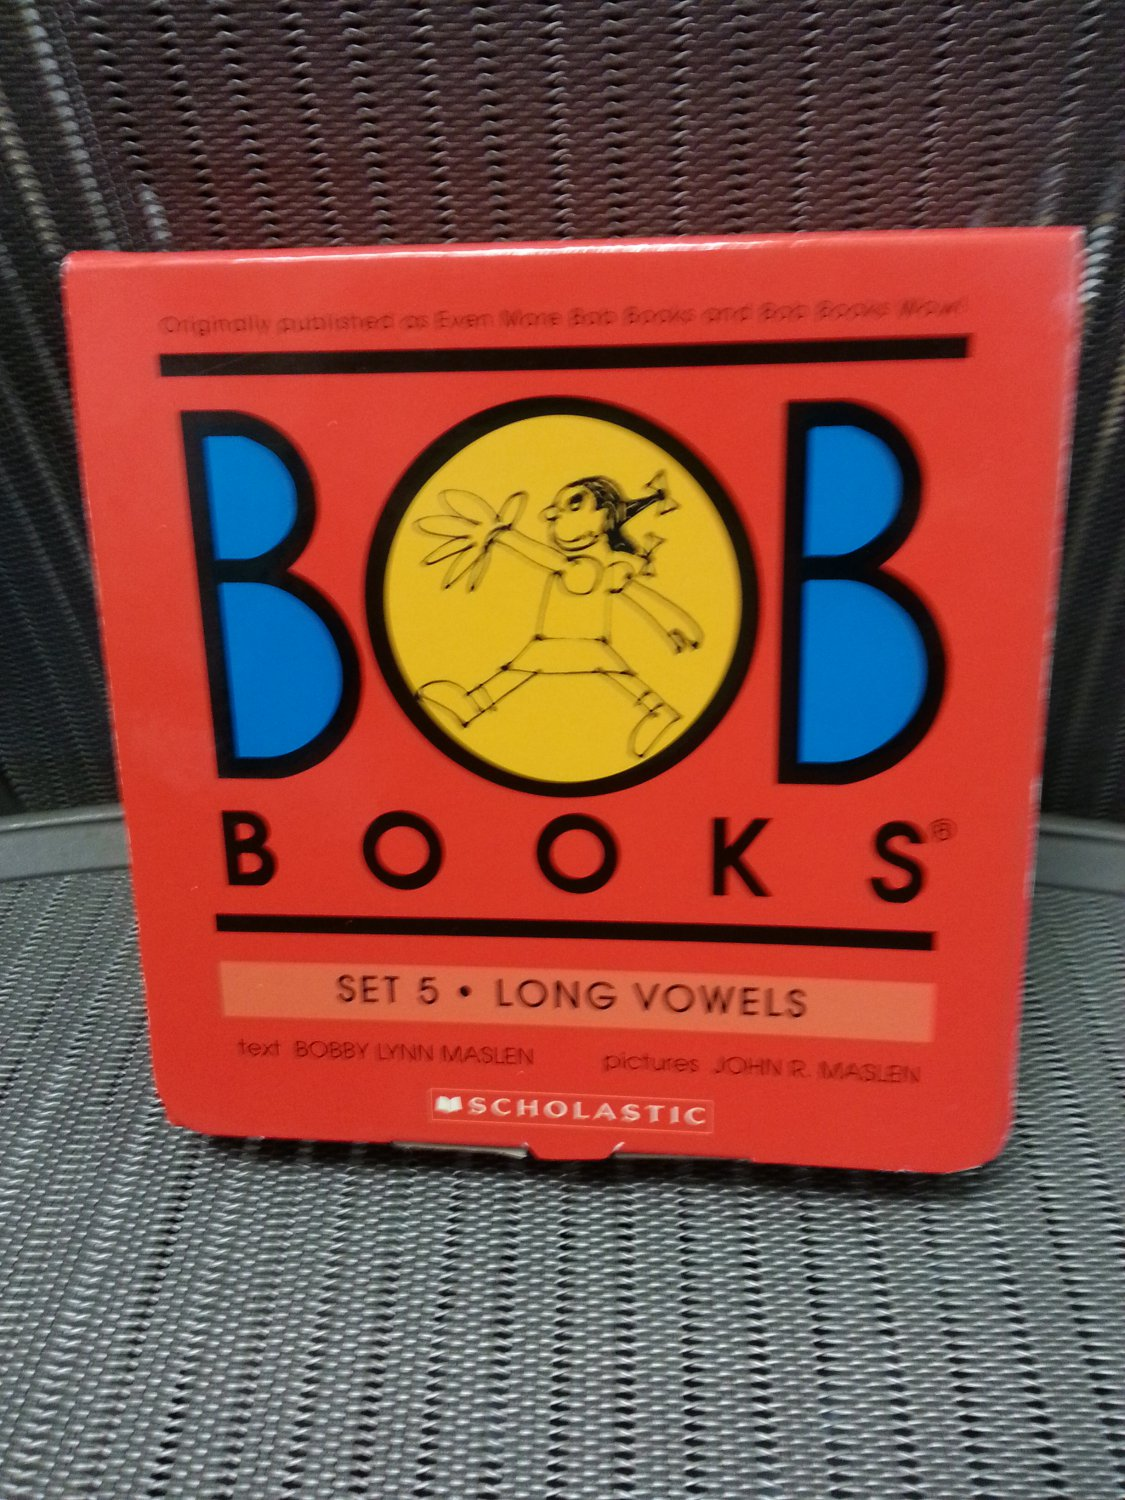 Bob Books Set 5 - Long Vowels Paperback � Box set by Bobby Lynn Maslen, John R. Maslen!